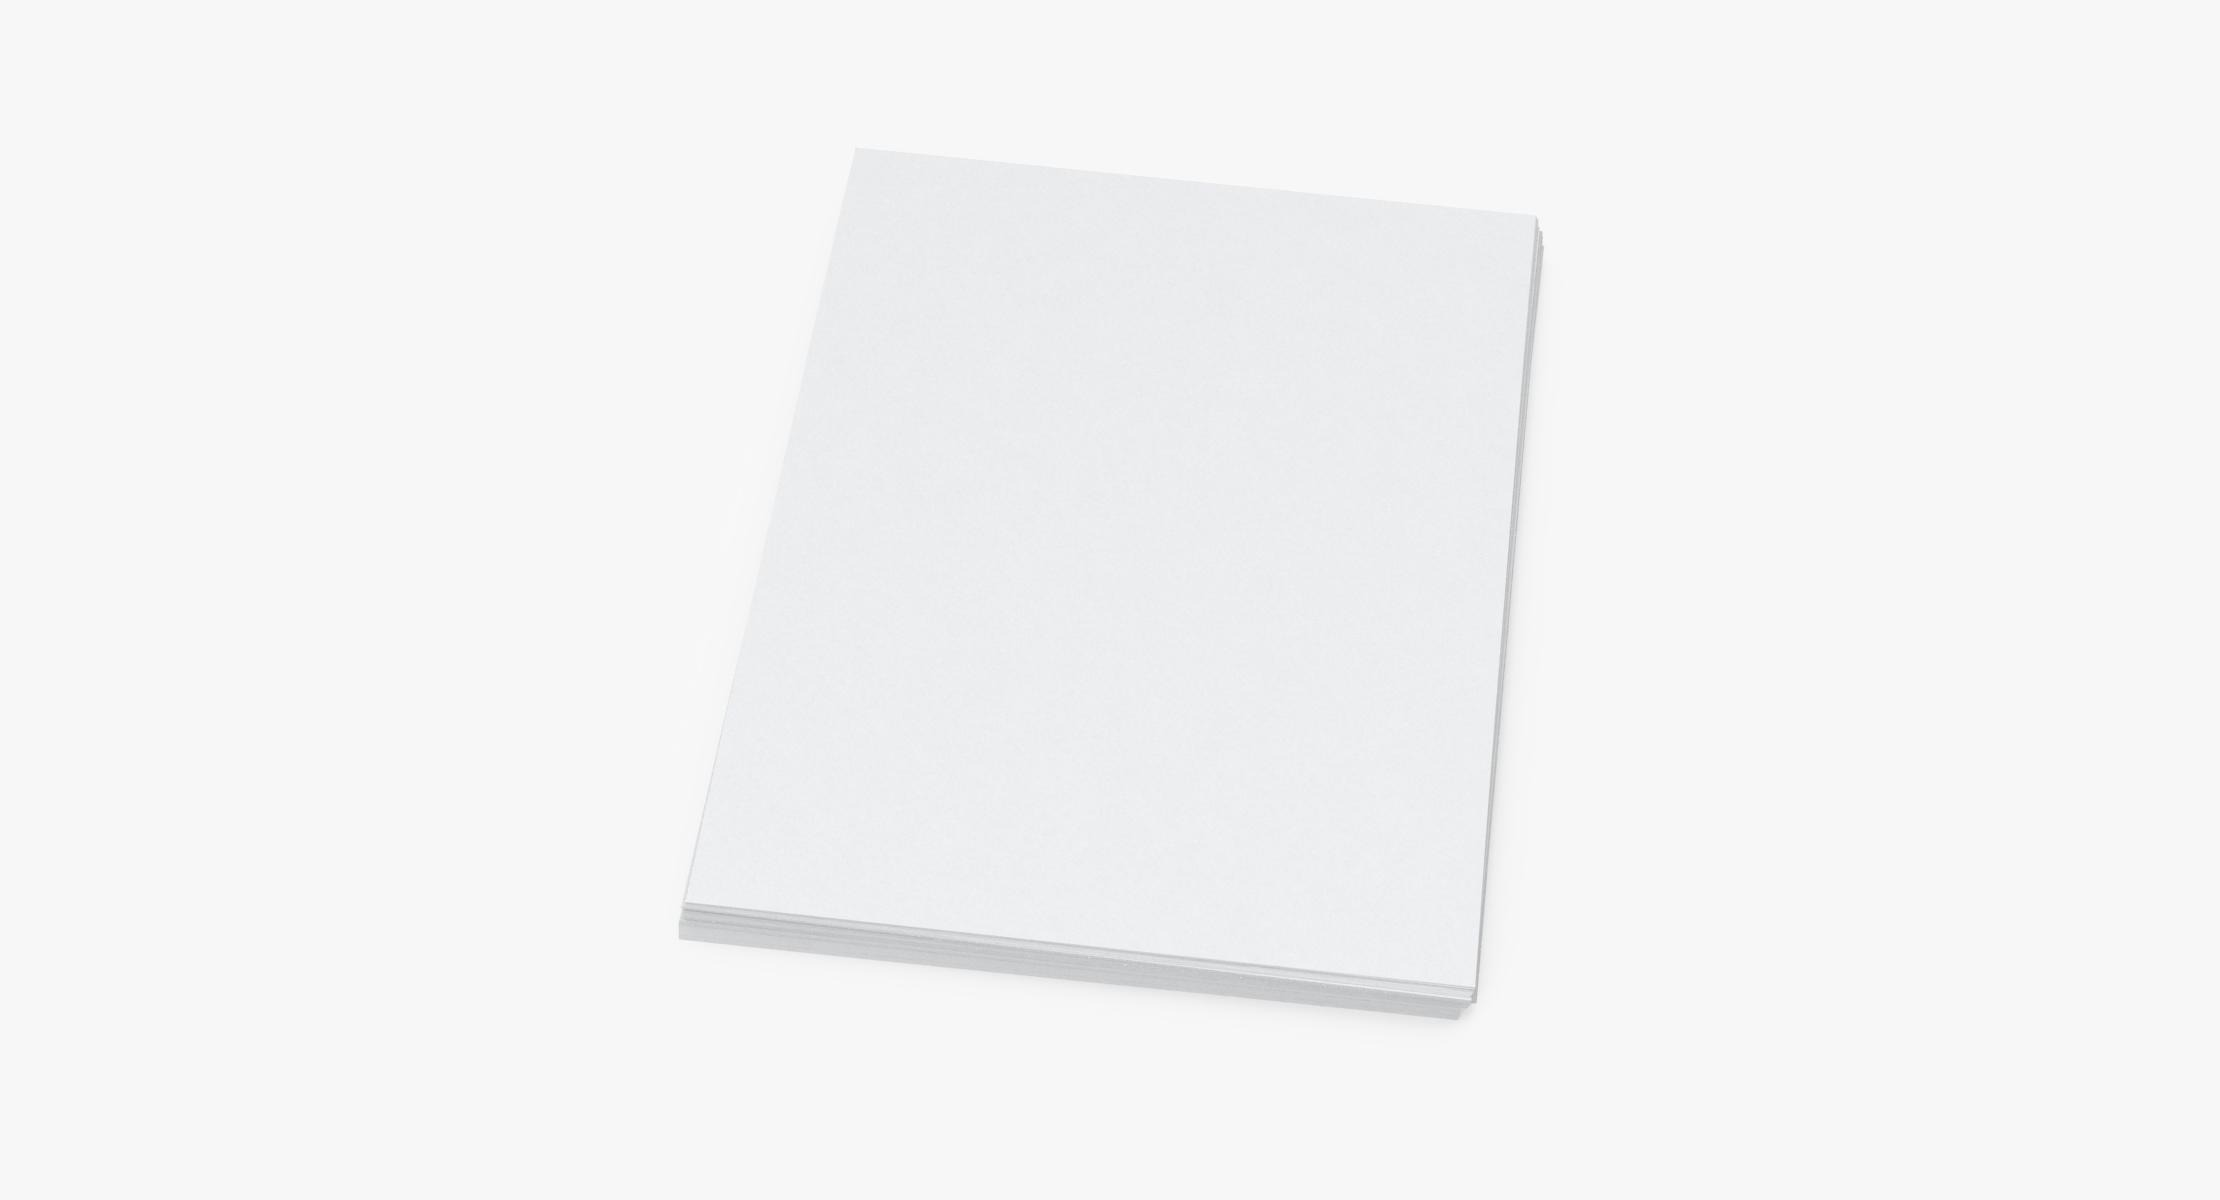 Small Stack of Paper Sheets 01 - reel 1